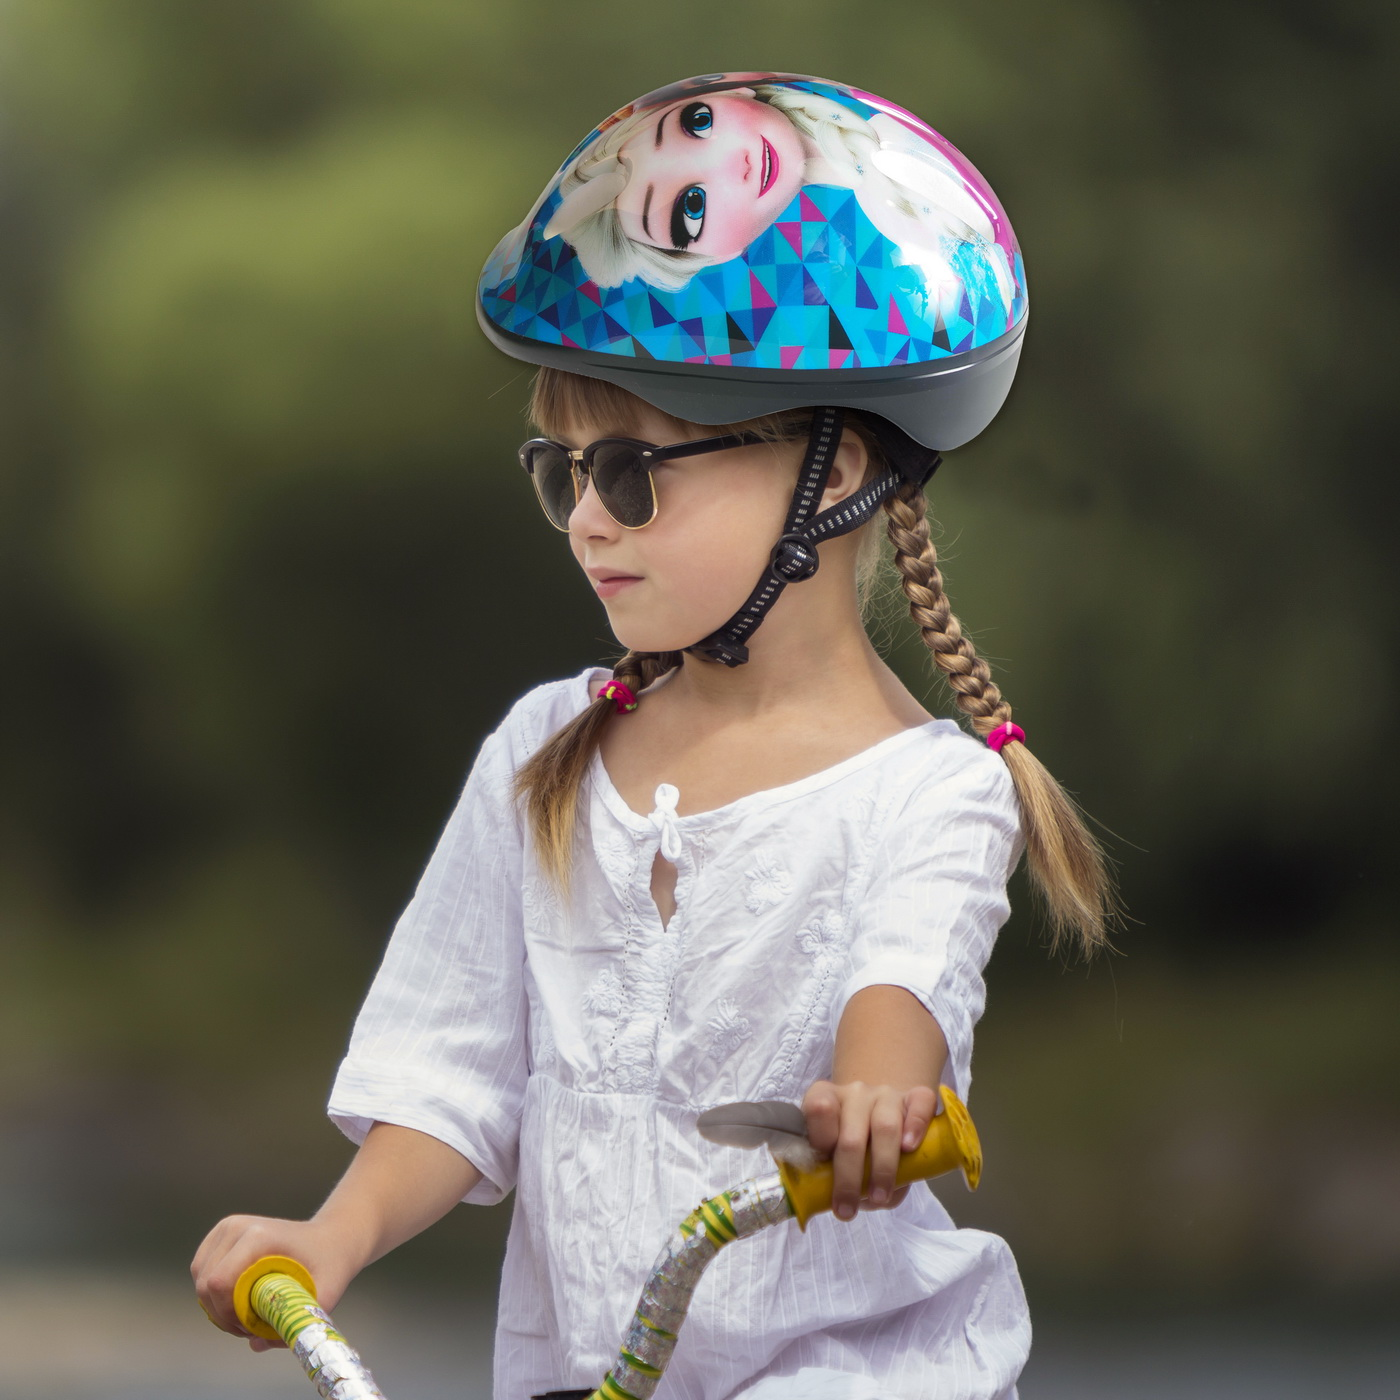 Close-up portrait of proud pretty young girl in white clothing, sunglasses with long blond braids wearing pink safety helmet riding child bicycle on blurred green trees summer copy space background.